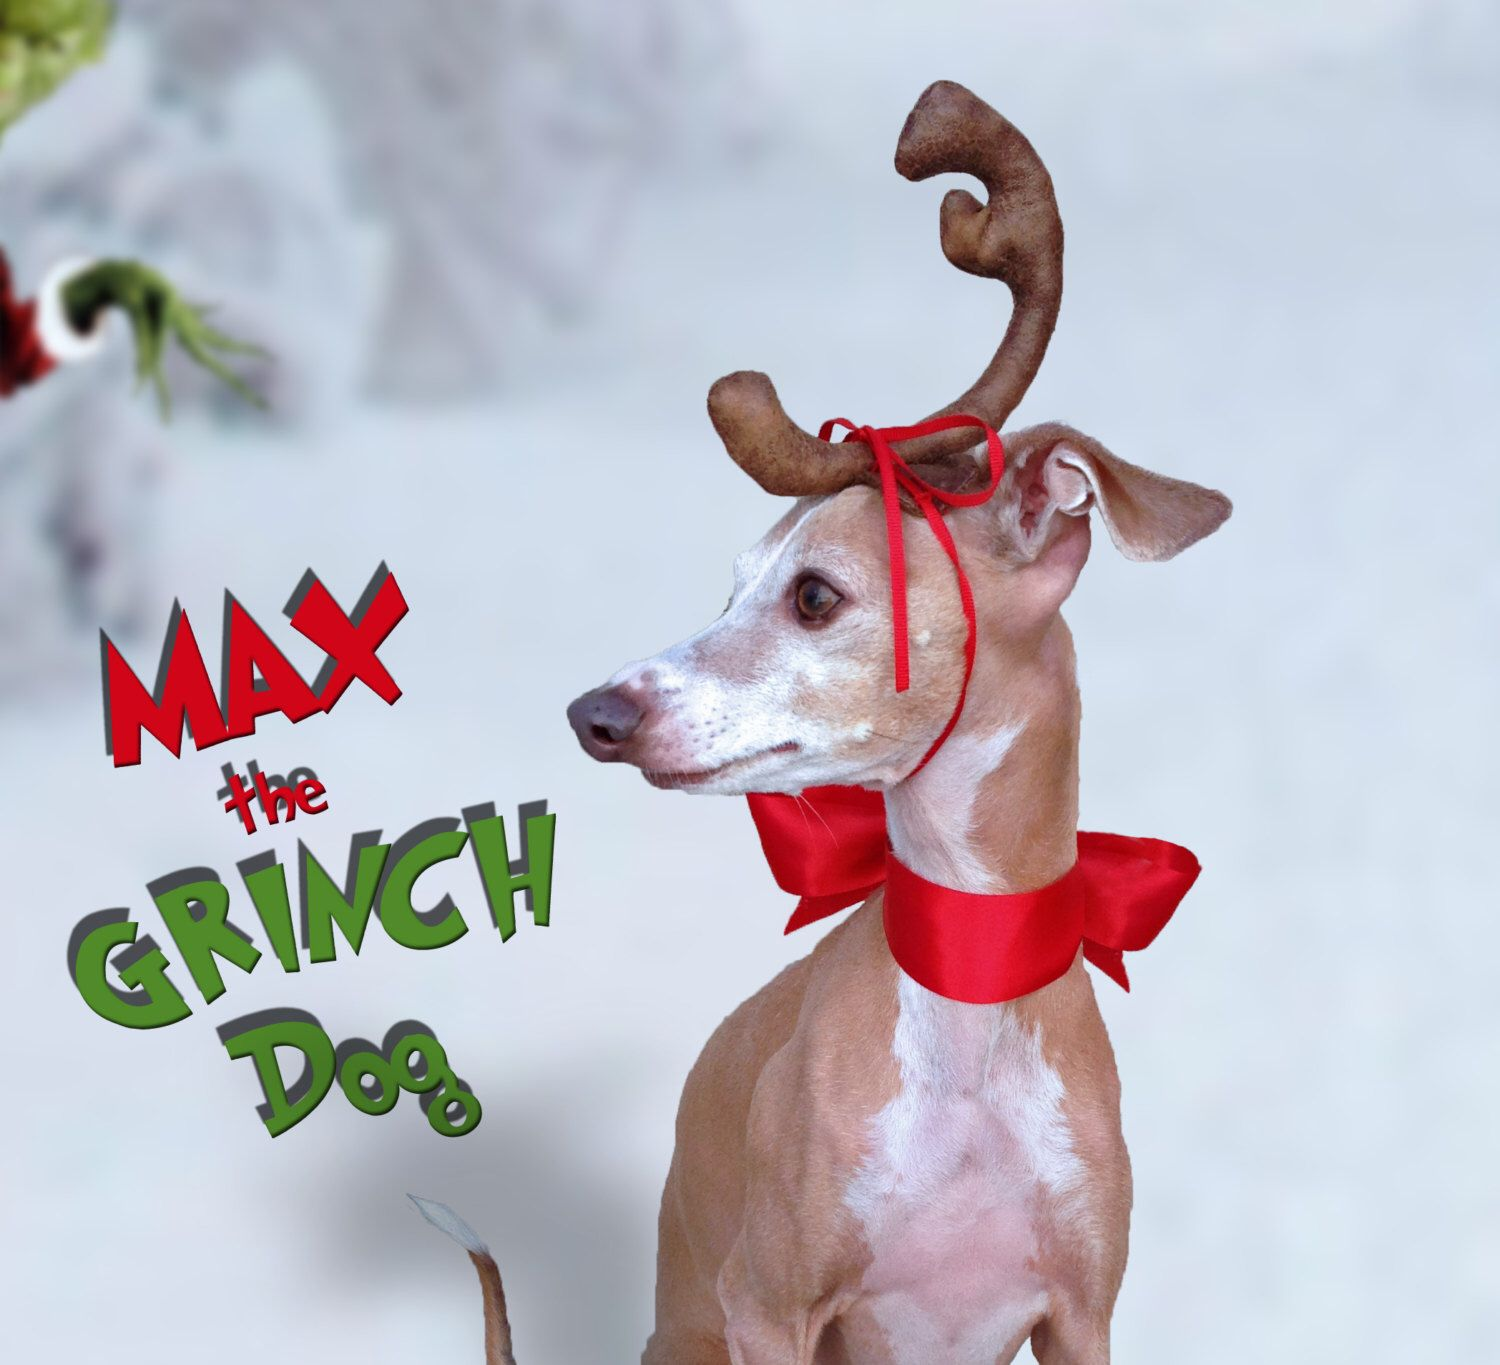 Grinch Stole Christmas Dog Breed